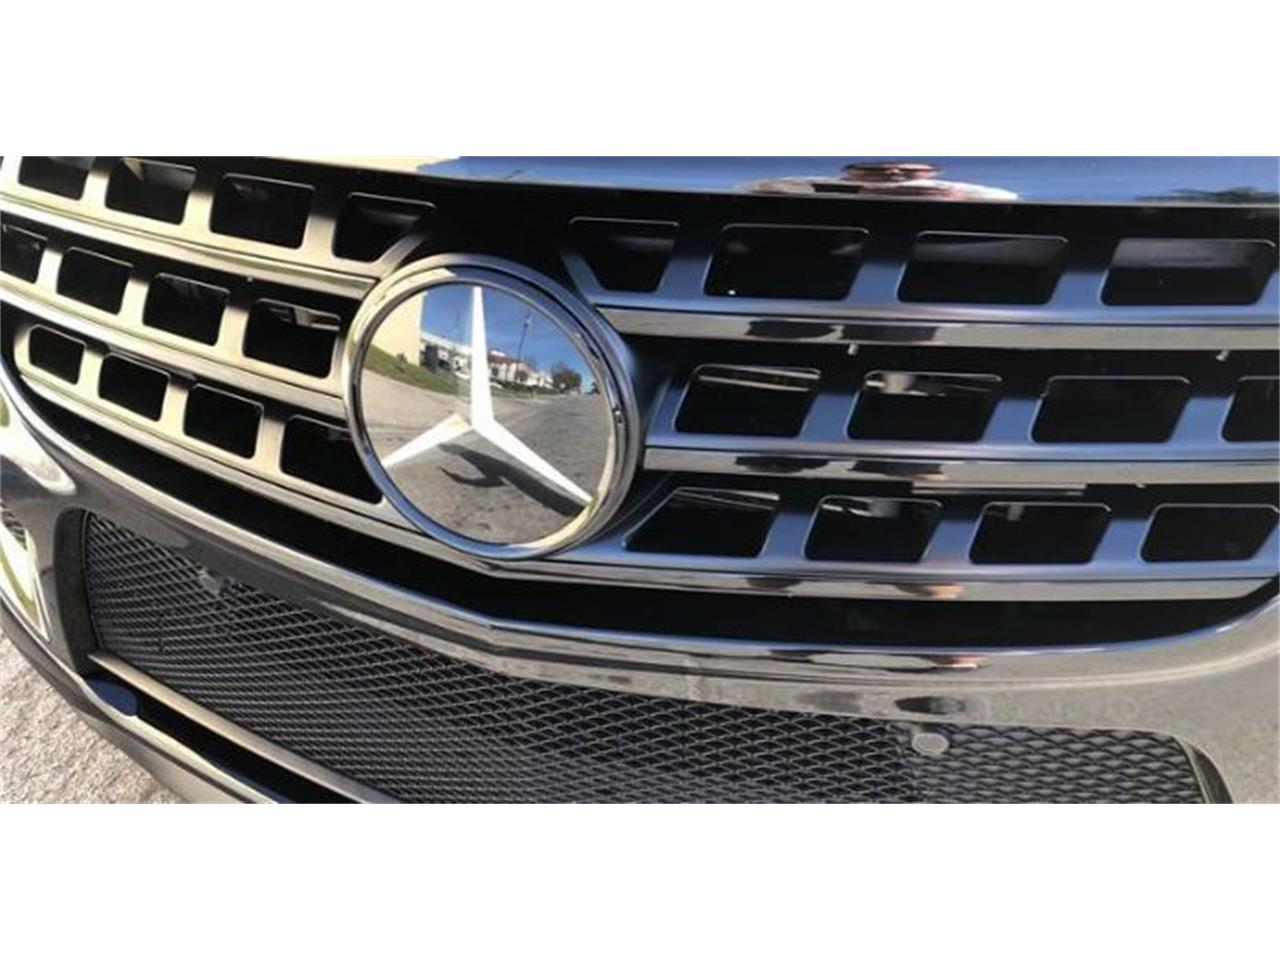 2012 Mercedes-Benz C-Class (CC-1328273) for sale in Cadillac, Michigan